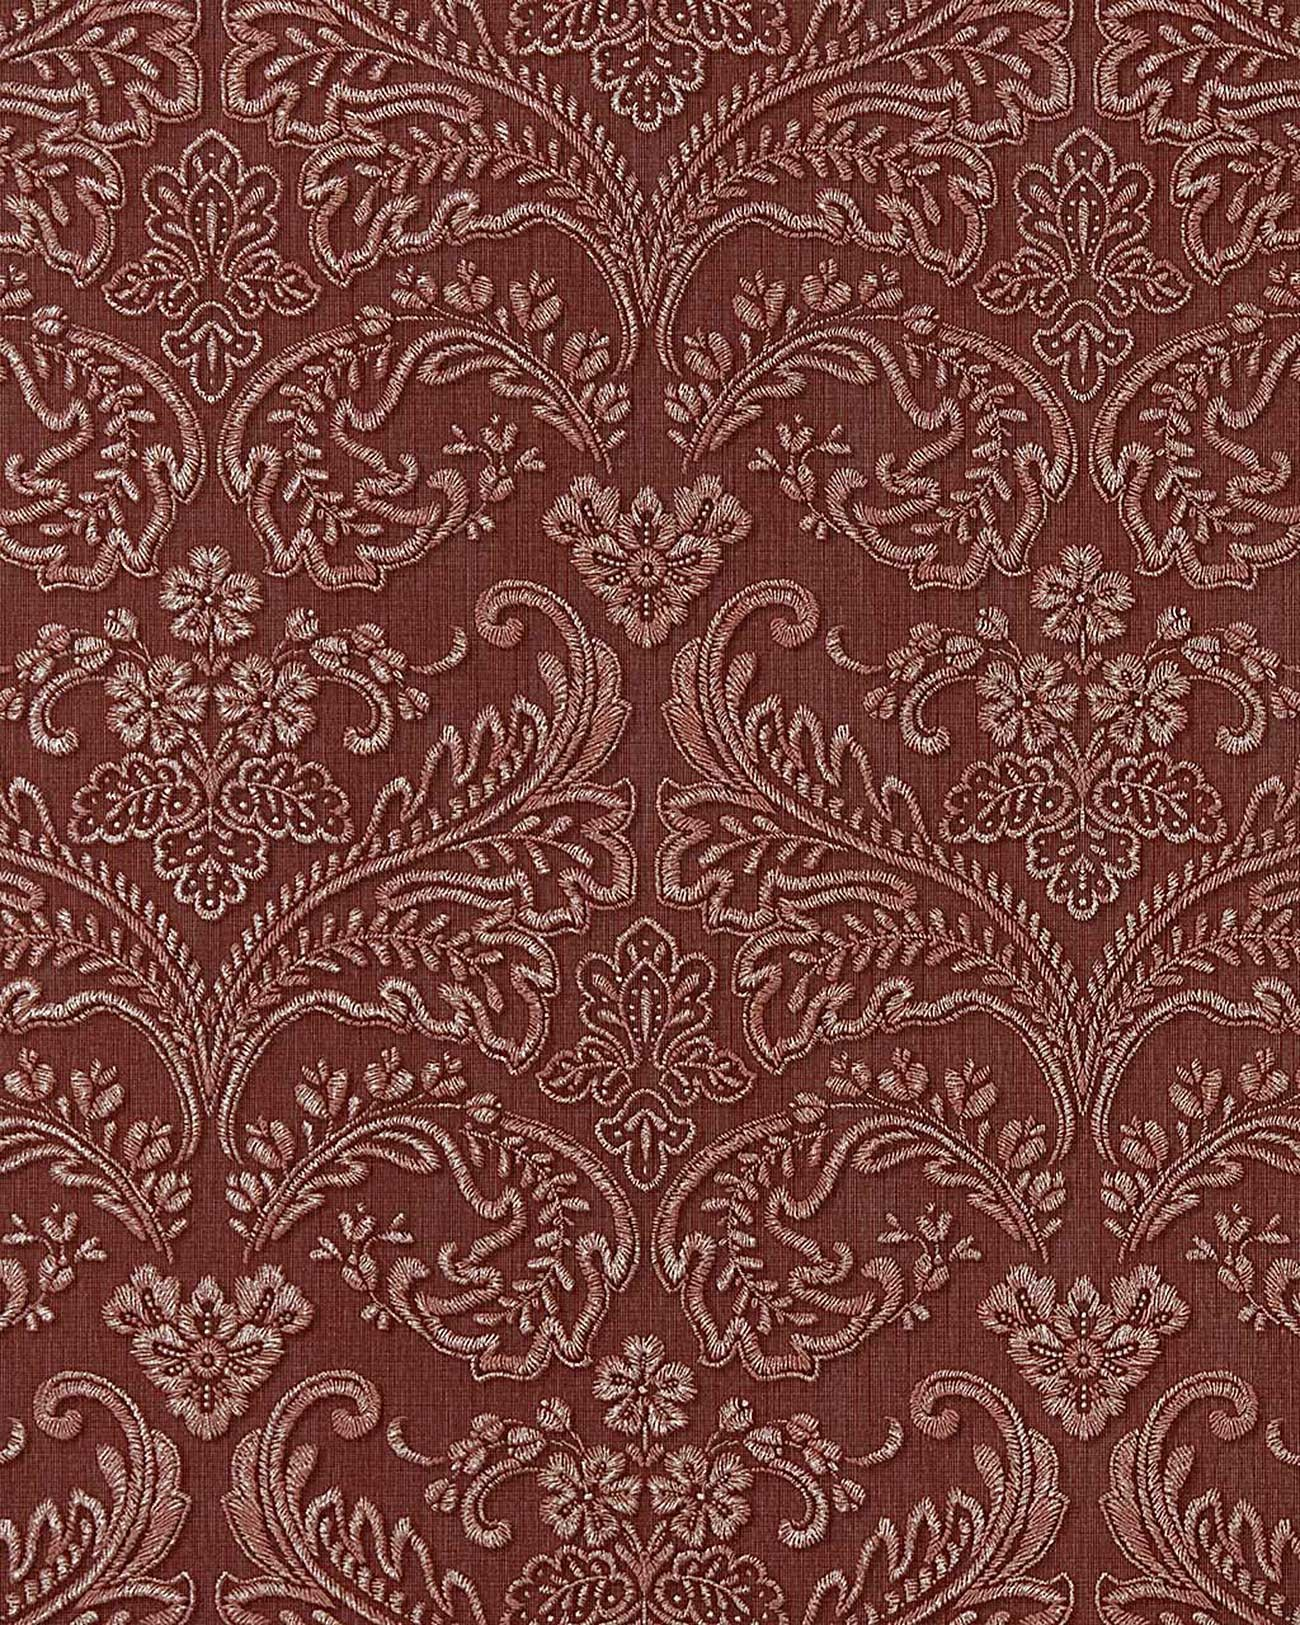 edem 755 26 3d barock pr ge tapete damask orient rot platin schattierung original edem. Black Bedroom Furniture Sets. Home Design Ideas